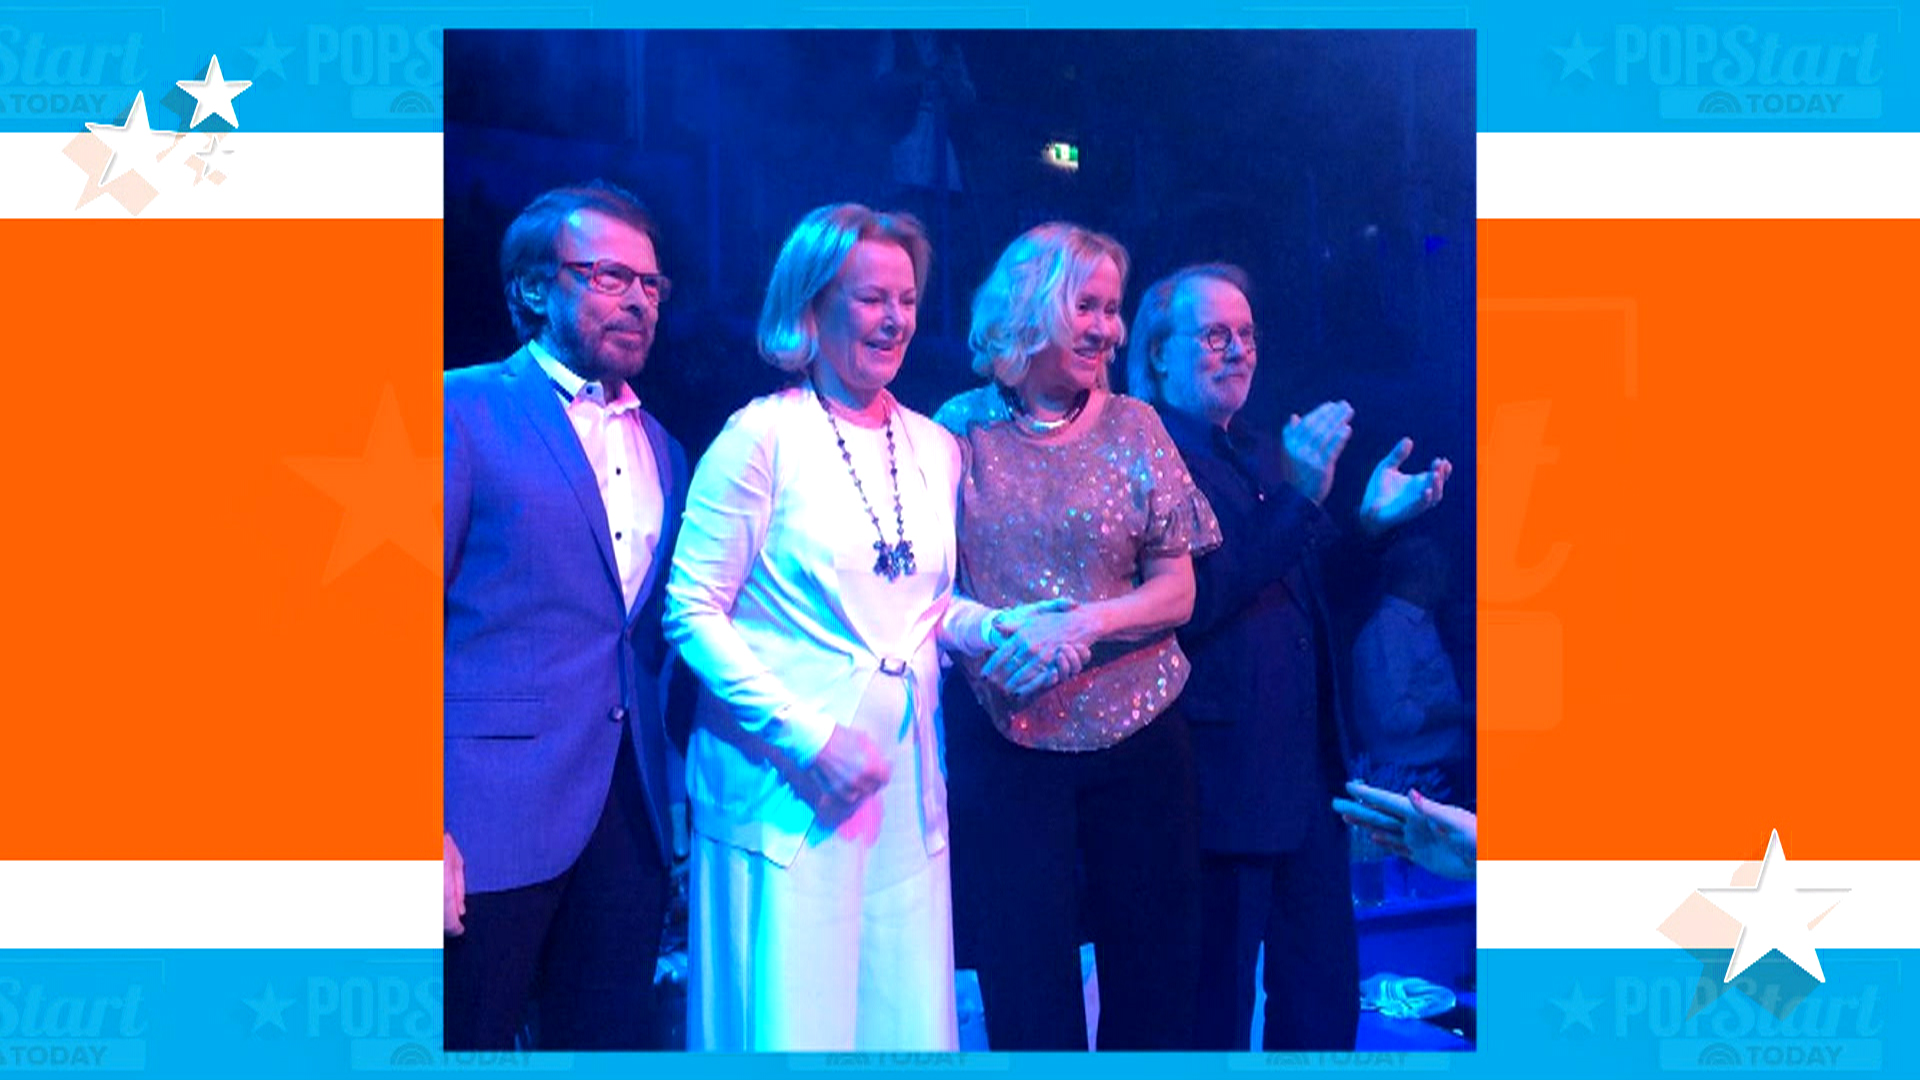 'Mamma Mia!' ABBA Makes Rare Reunion Appearance